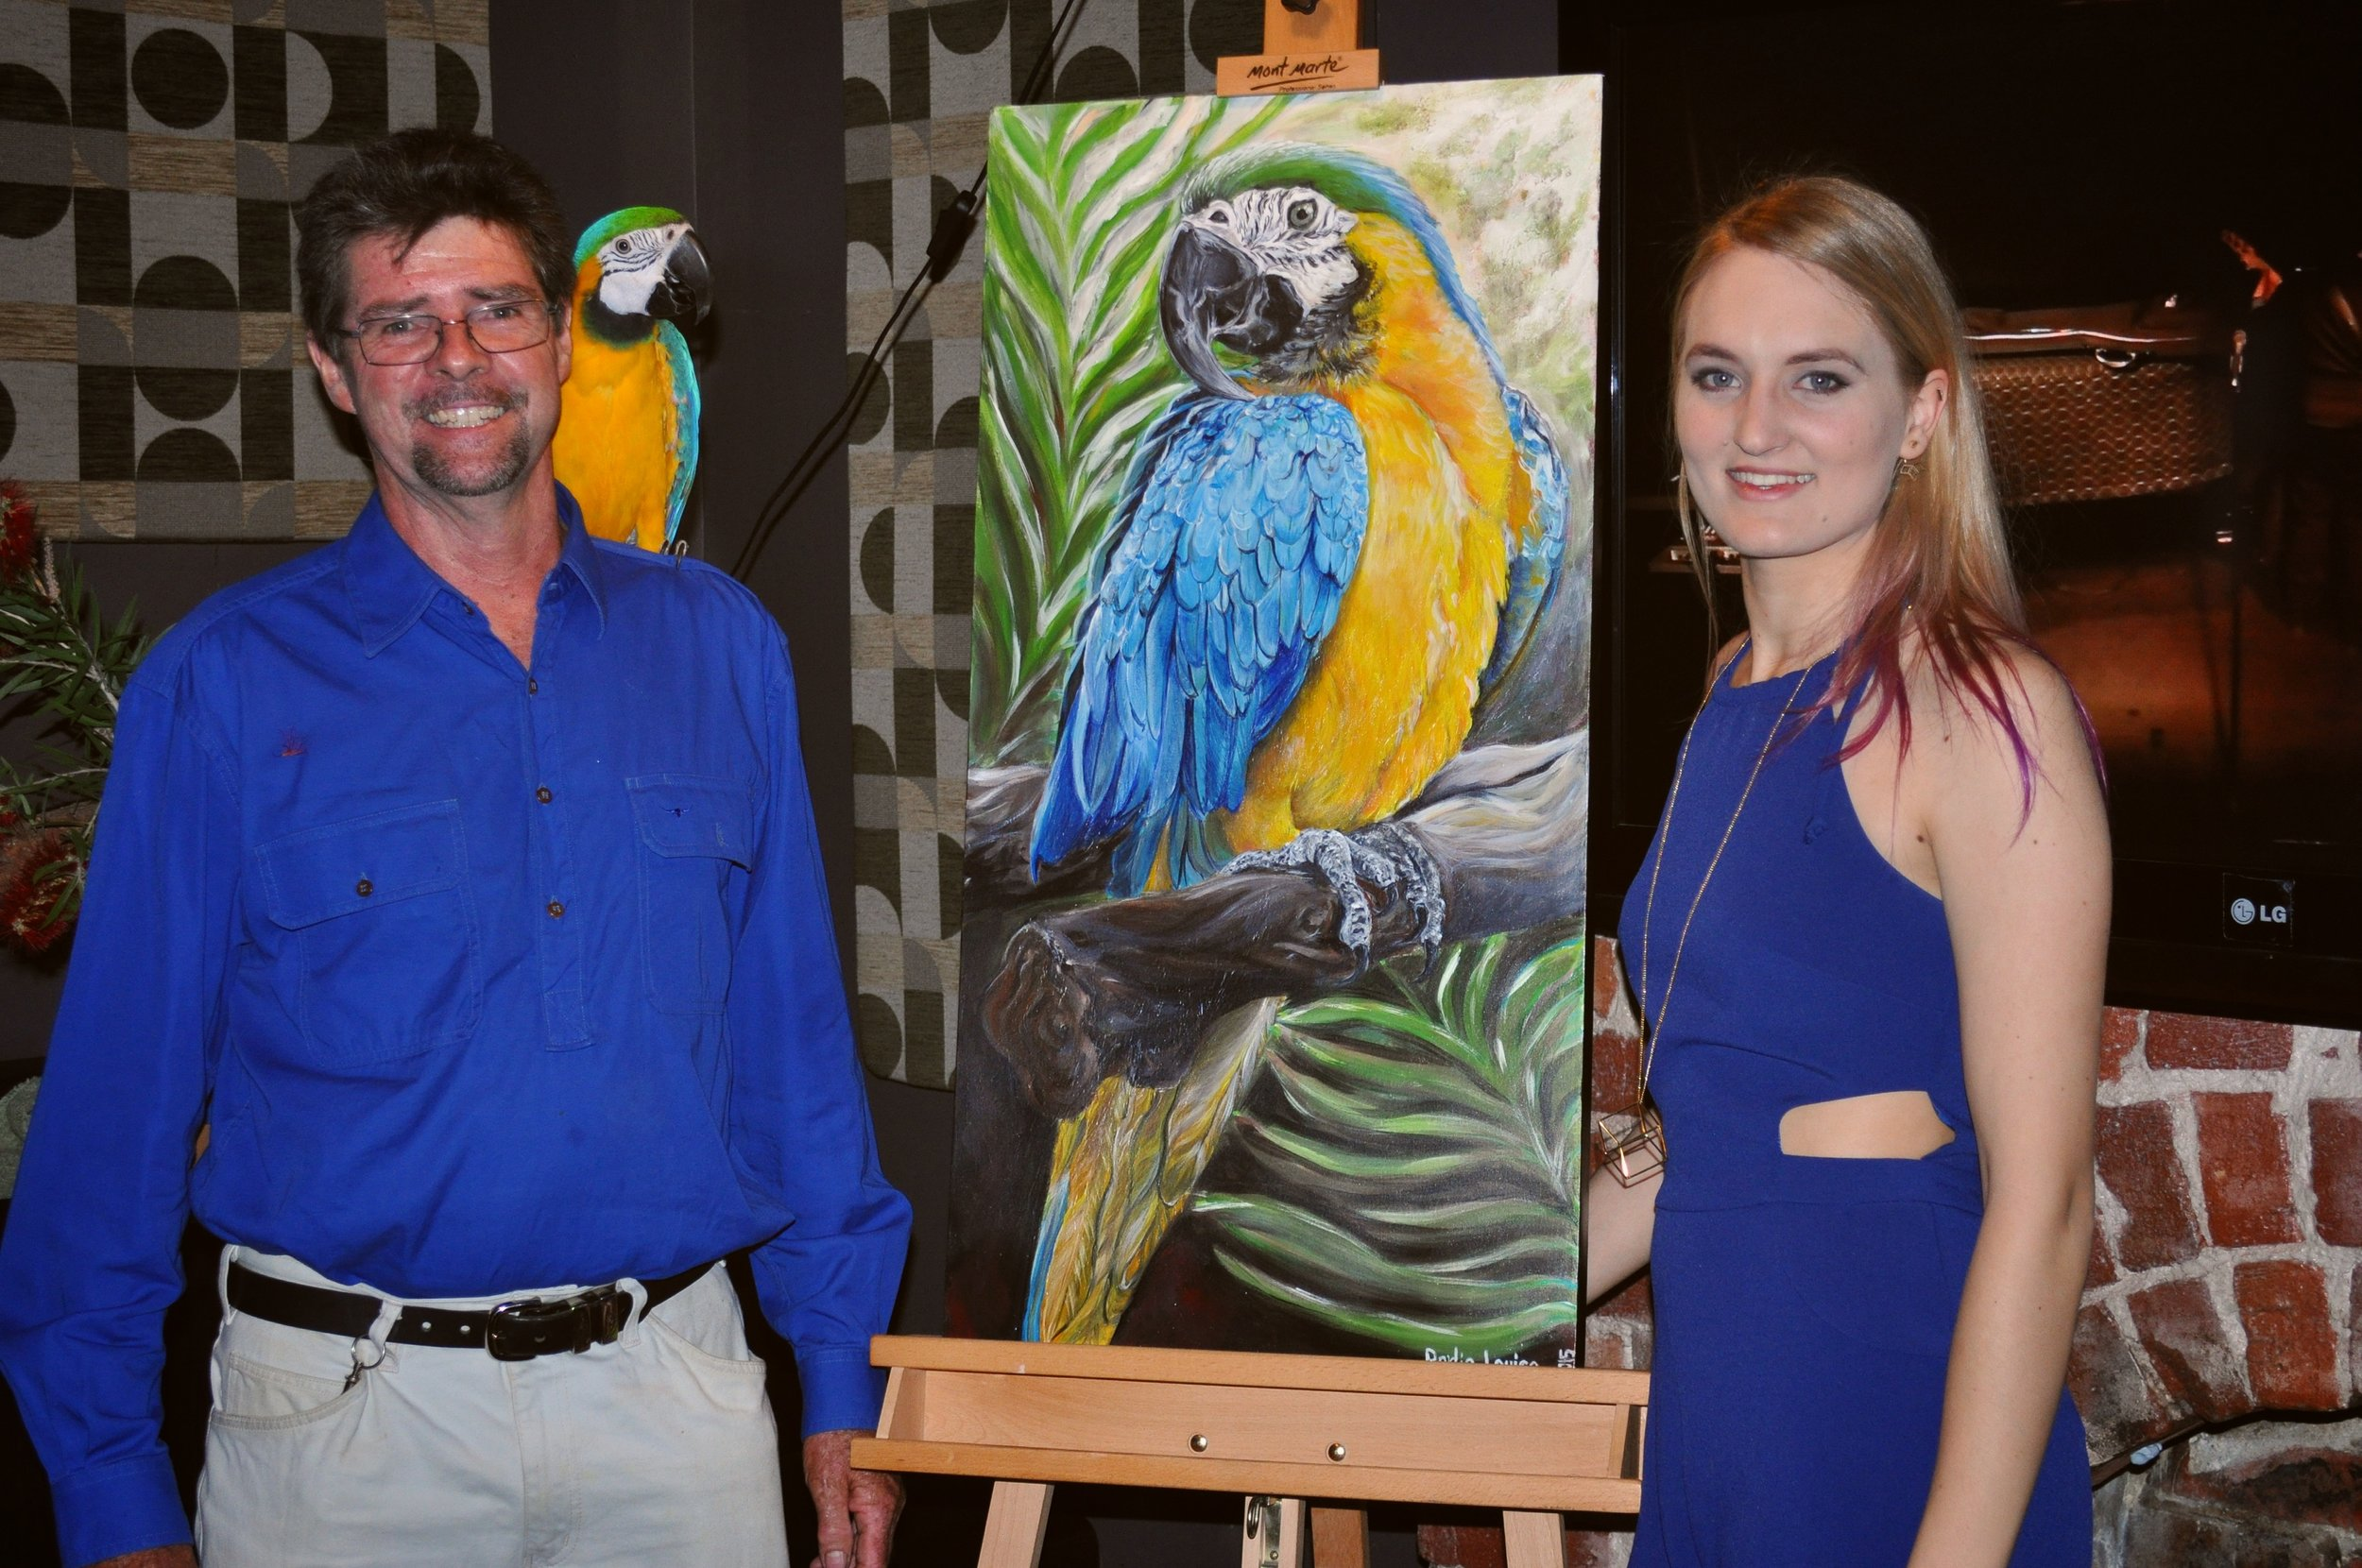 The special guest of the night, Kenobi, the Macaw